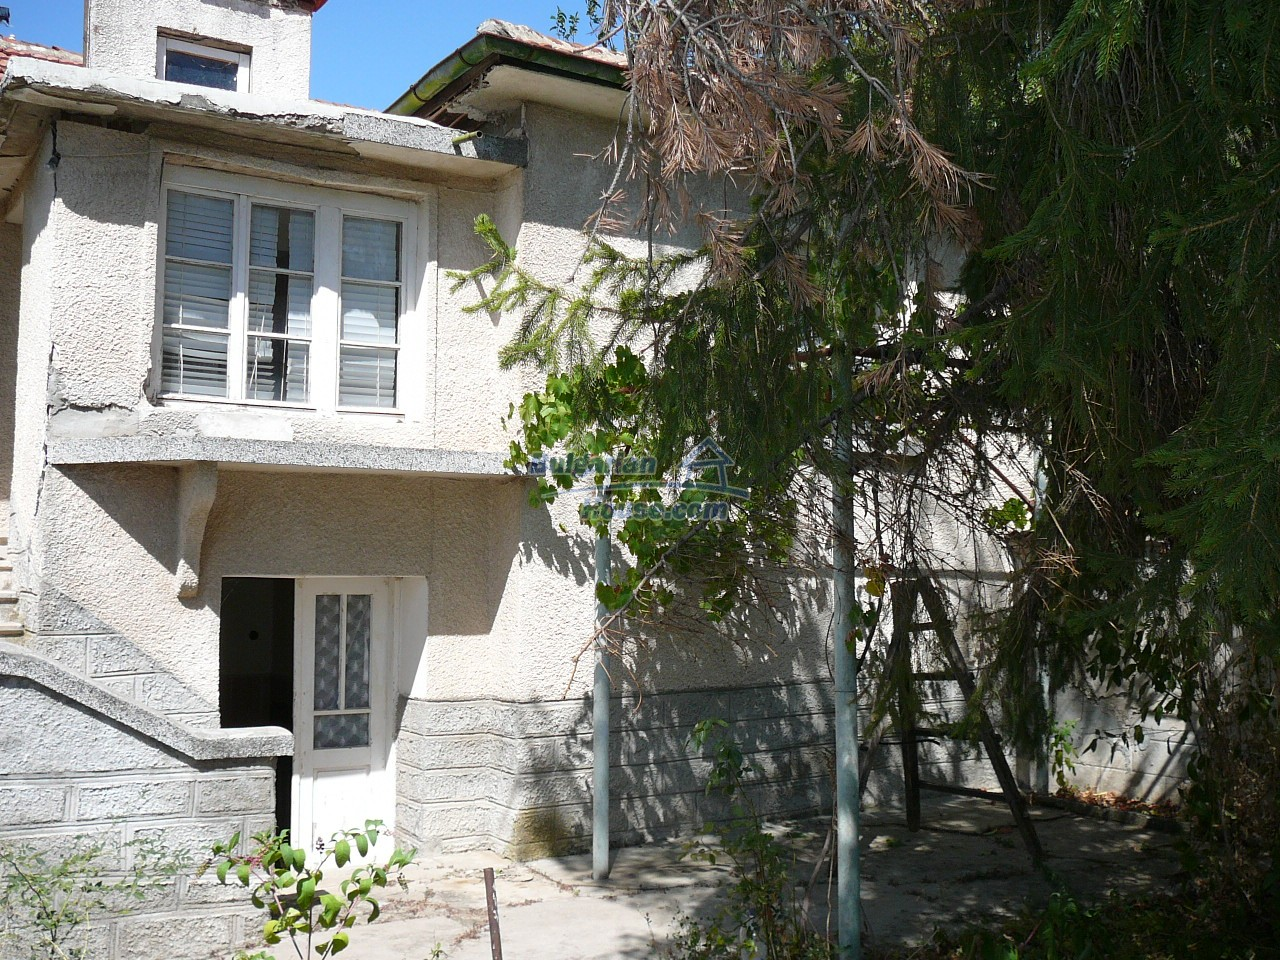 12527:1 - House  in good condition Stara Zagora region 55km to Plovdiv